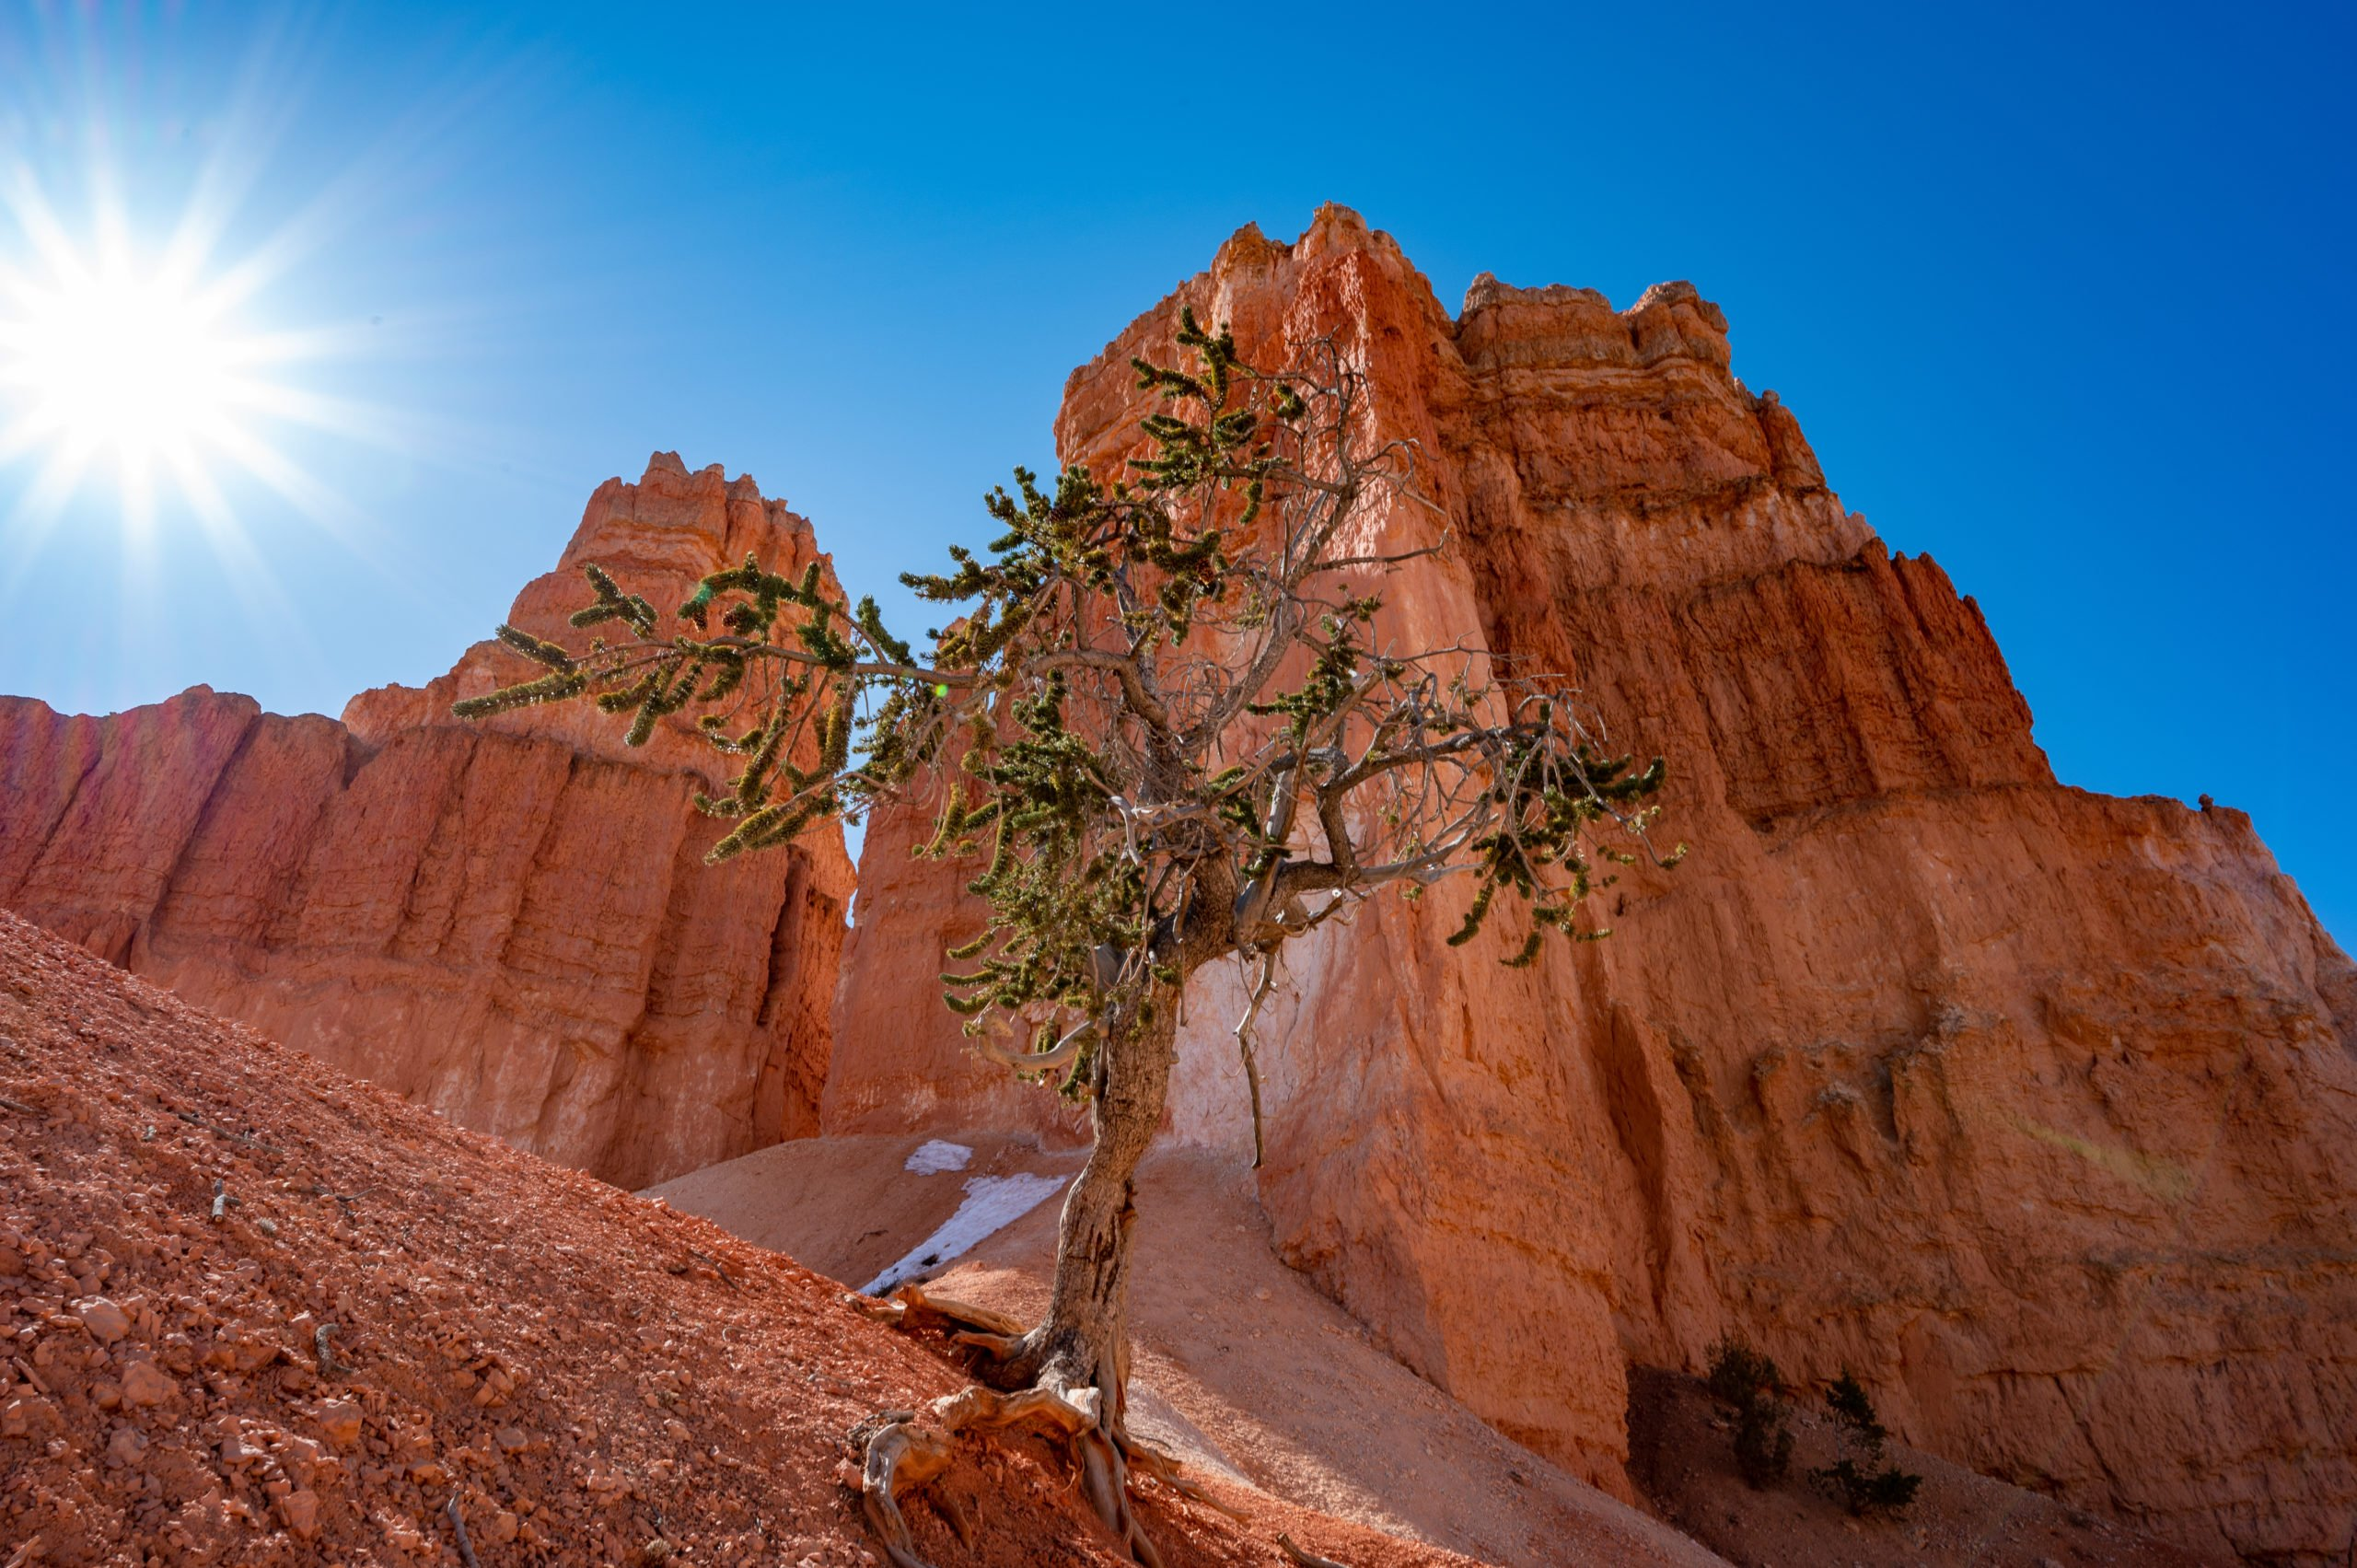 An interesting tree in Bryce Canyon.